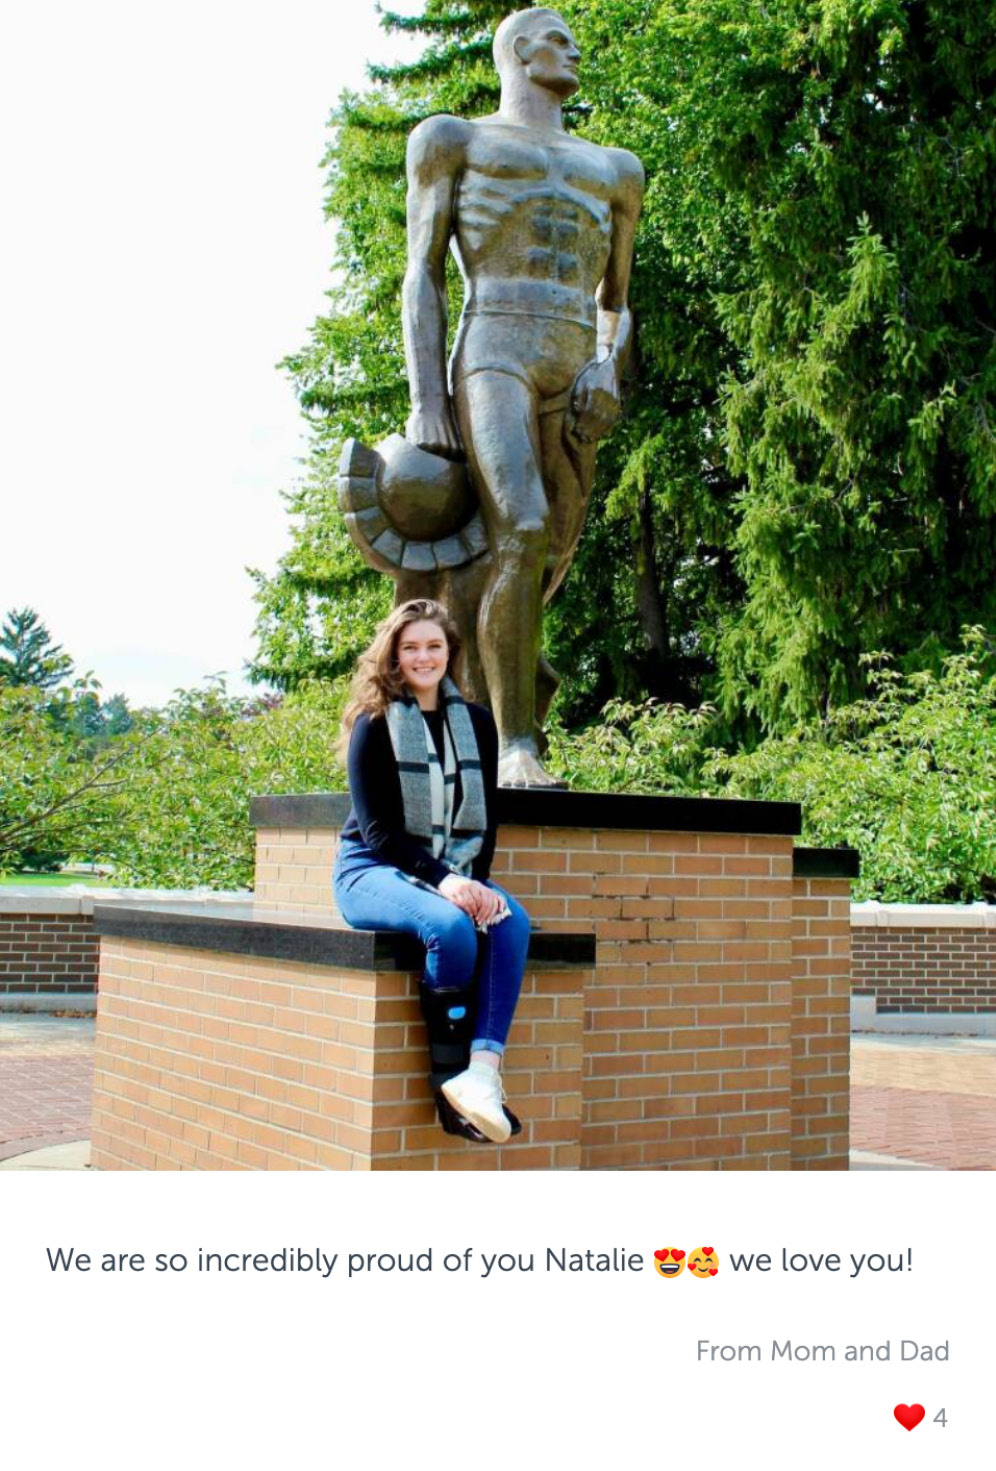 Post with photo of a woman sitting next to Sparty statue, and congratulatory message